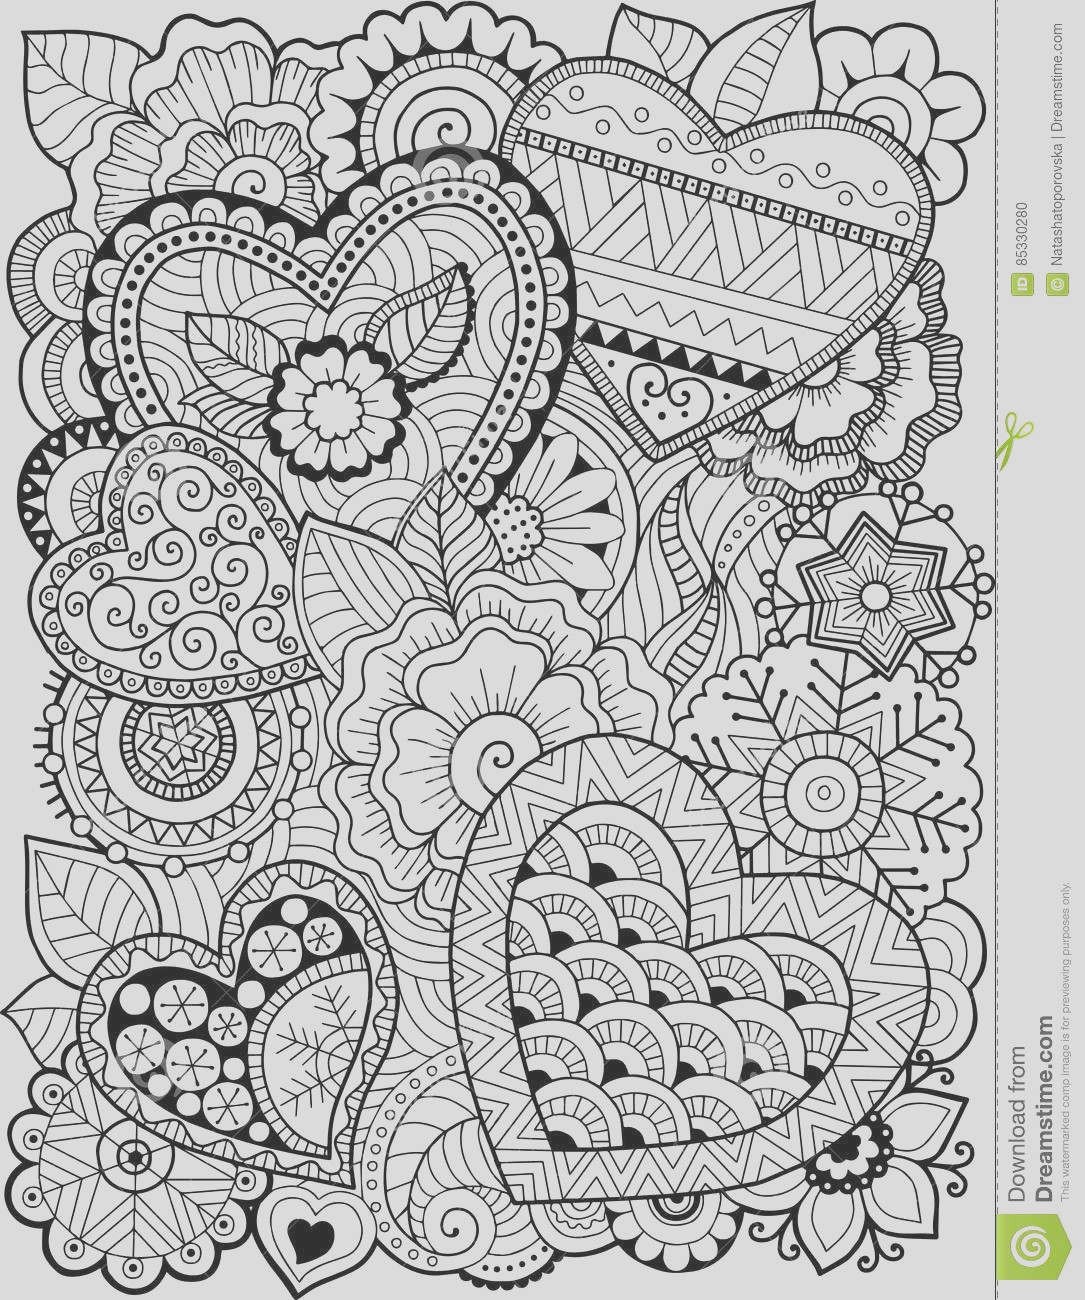 stock illustration coloring book adult hearts flowers valentines day vector page adults hand drawn background white greeting cards image